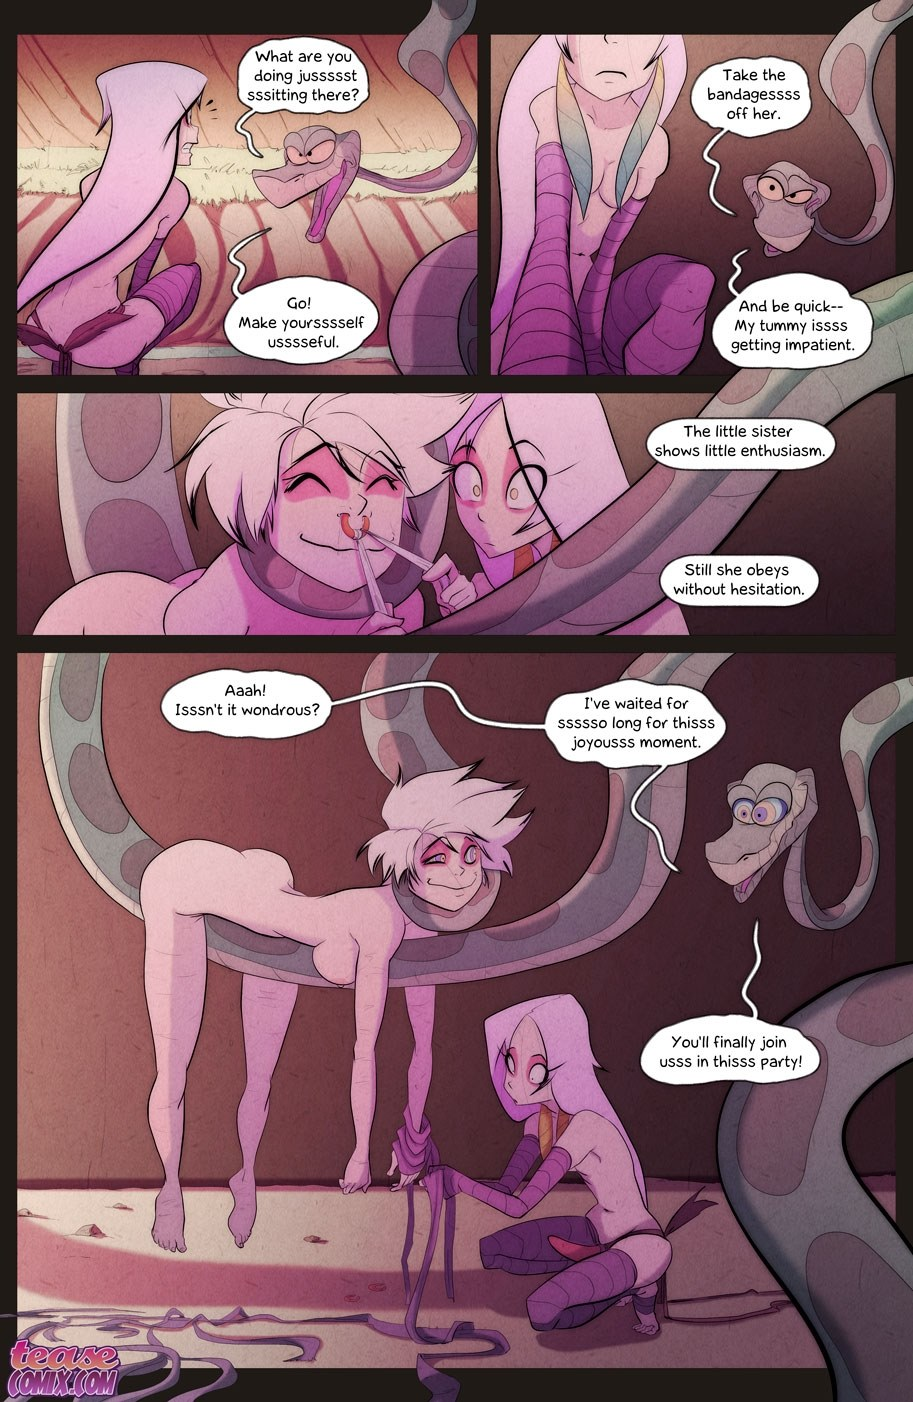 [Fixxxer] The Snake and The Girl 5